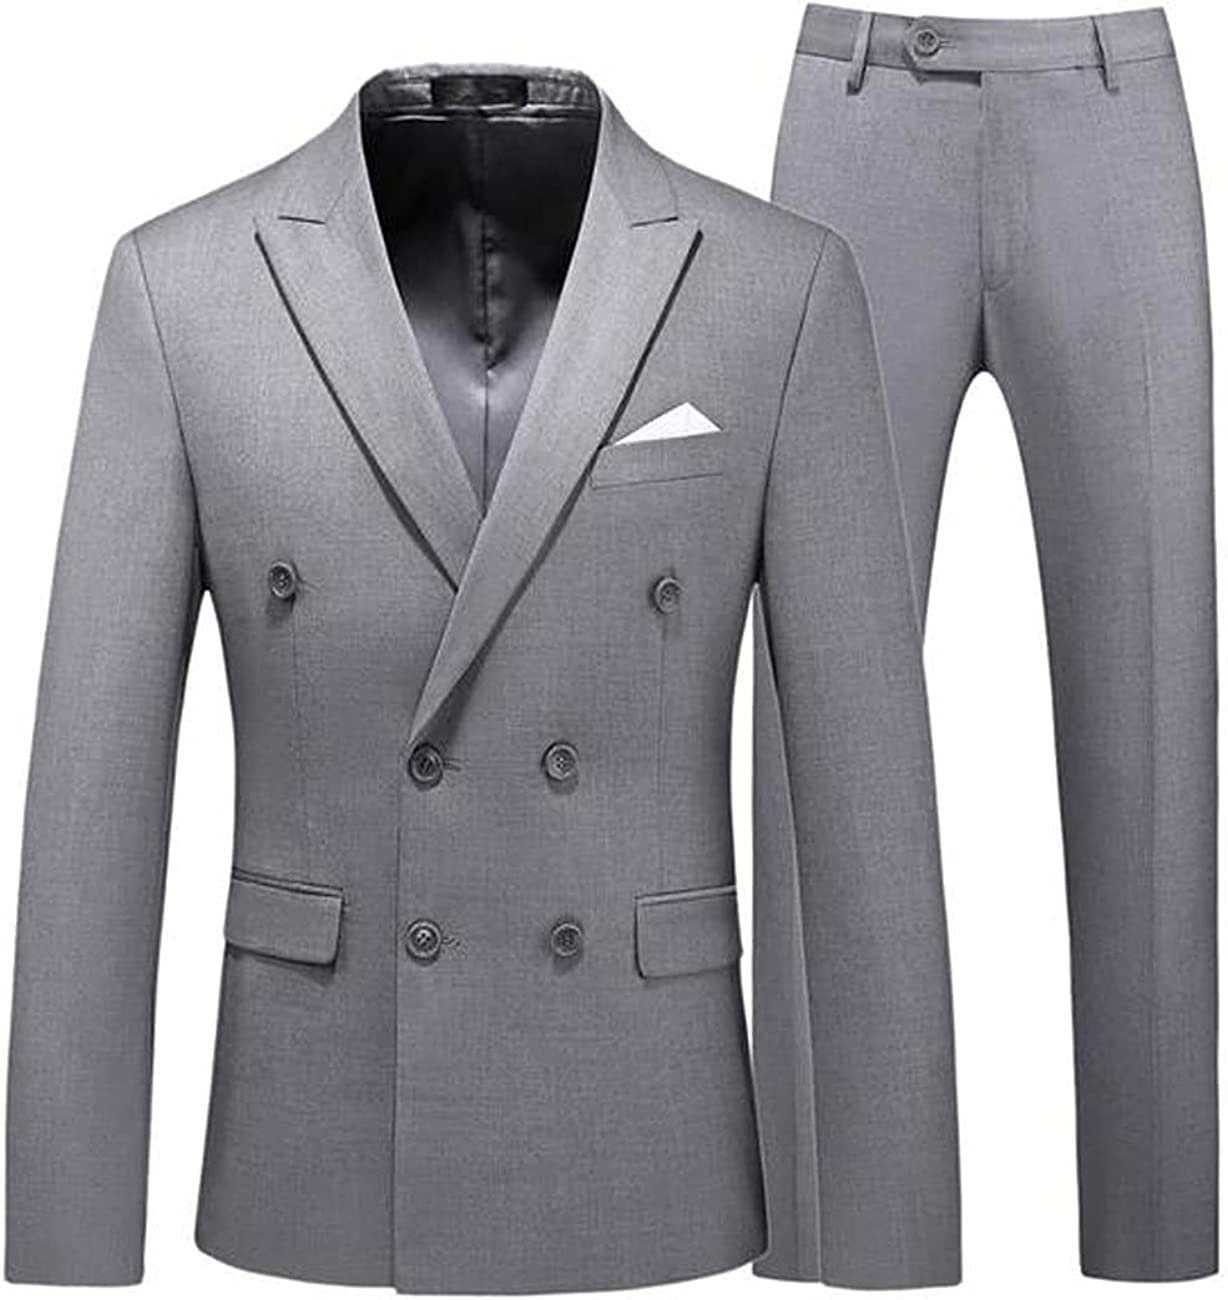 Store werp Men's Suit 2 Piece Solid Double Breasted Ja Tuxedo ! Super beauty product restock quality top! Slim Fit